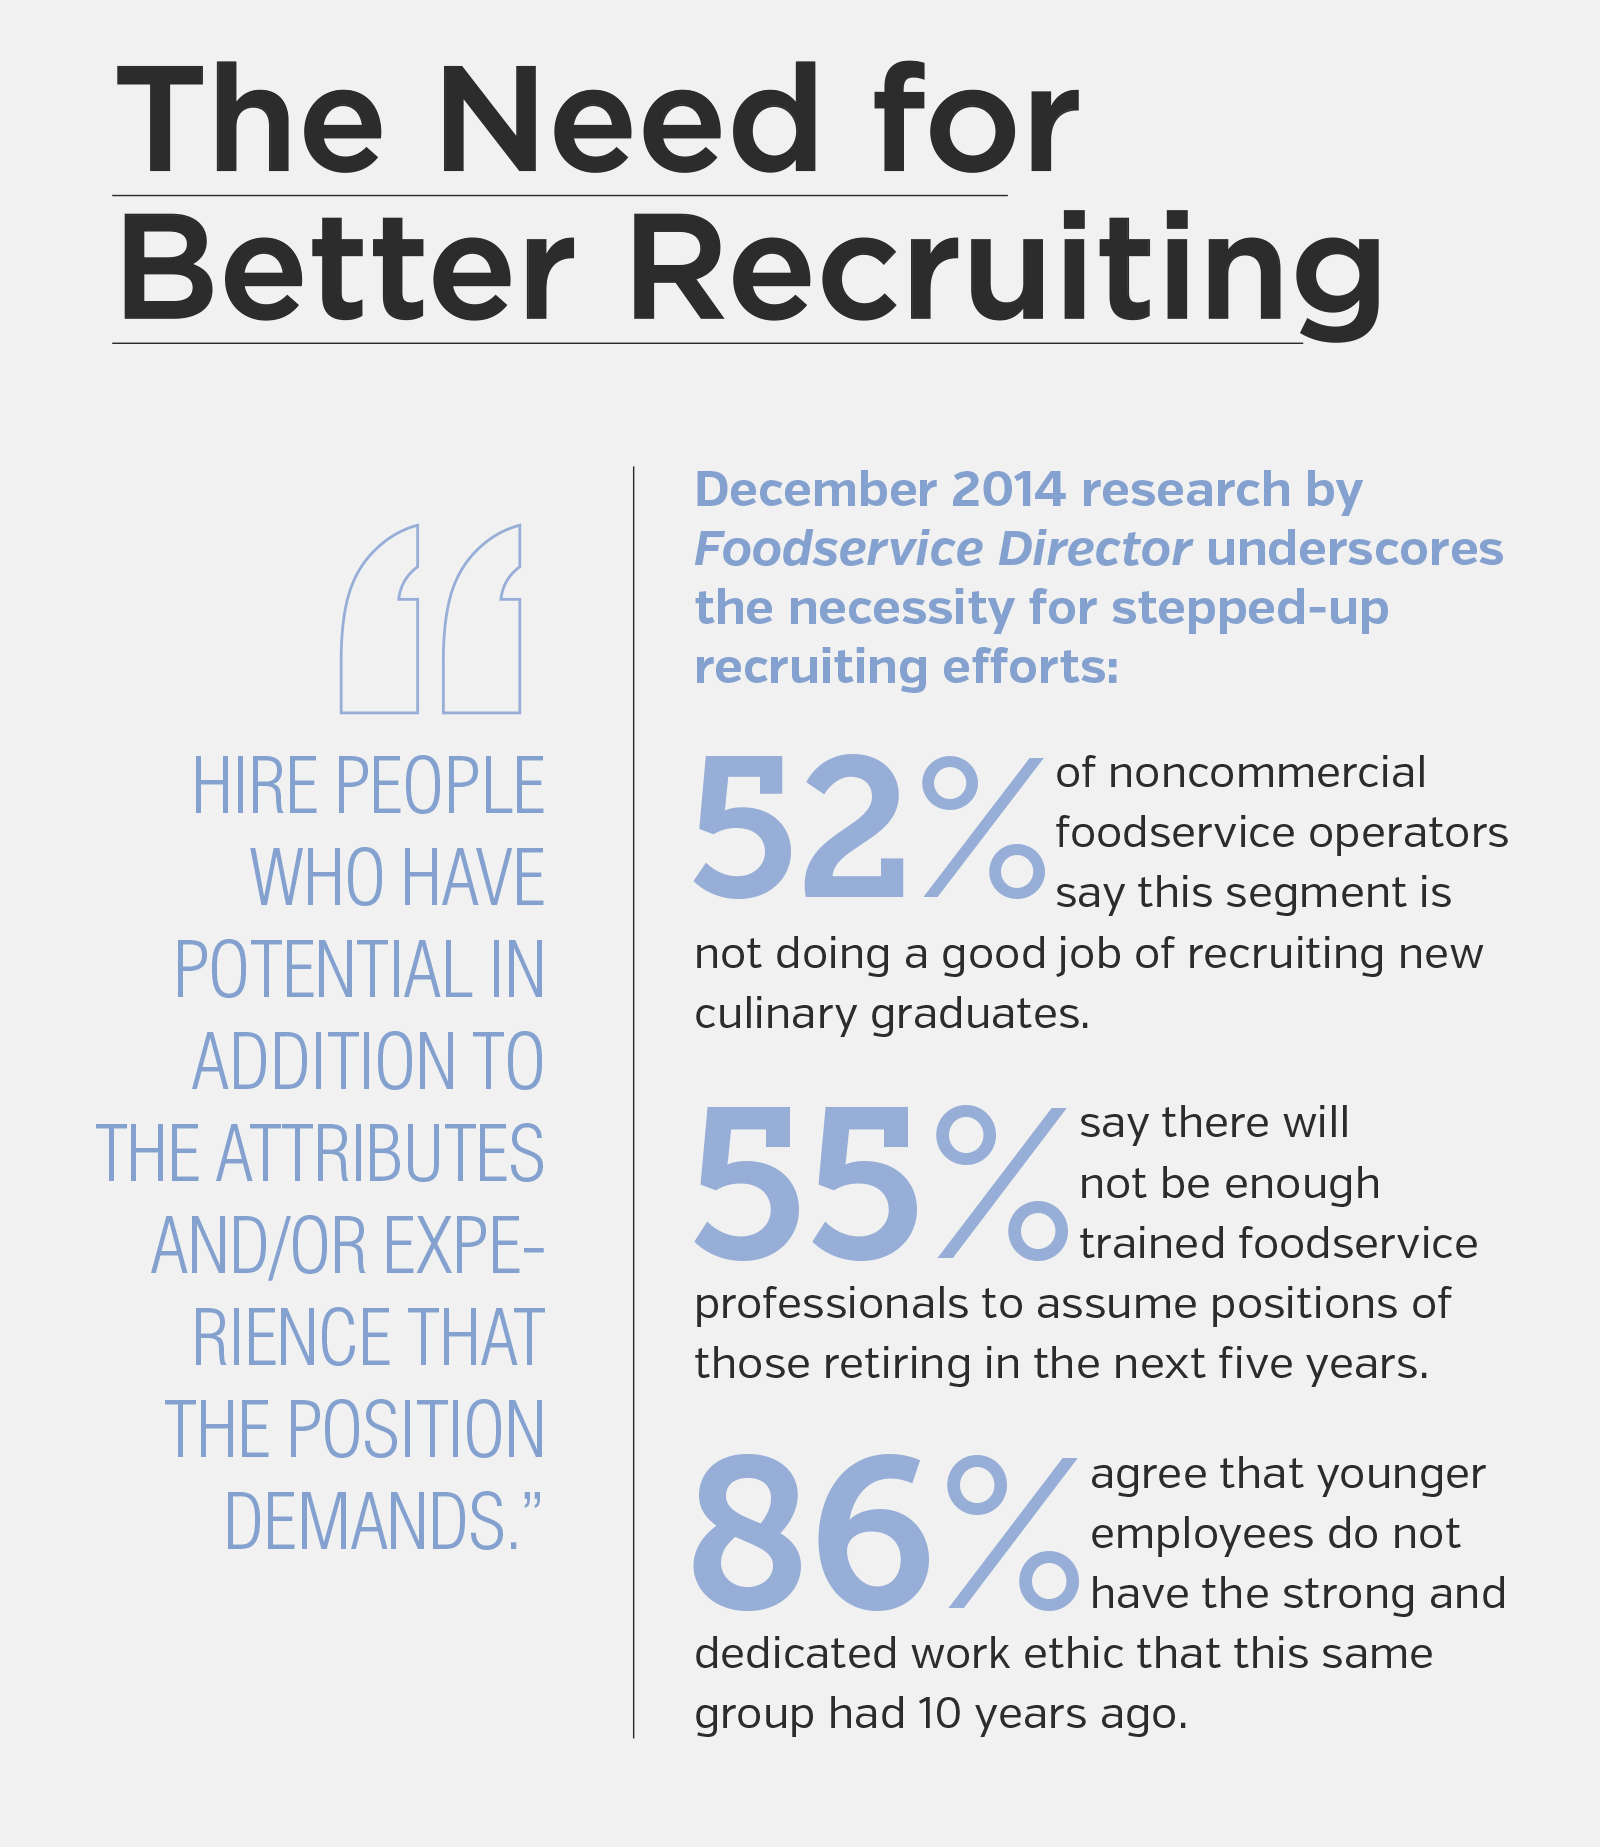 The Need for Better Recruiting